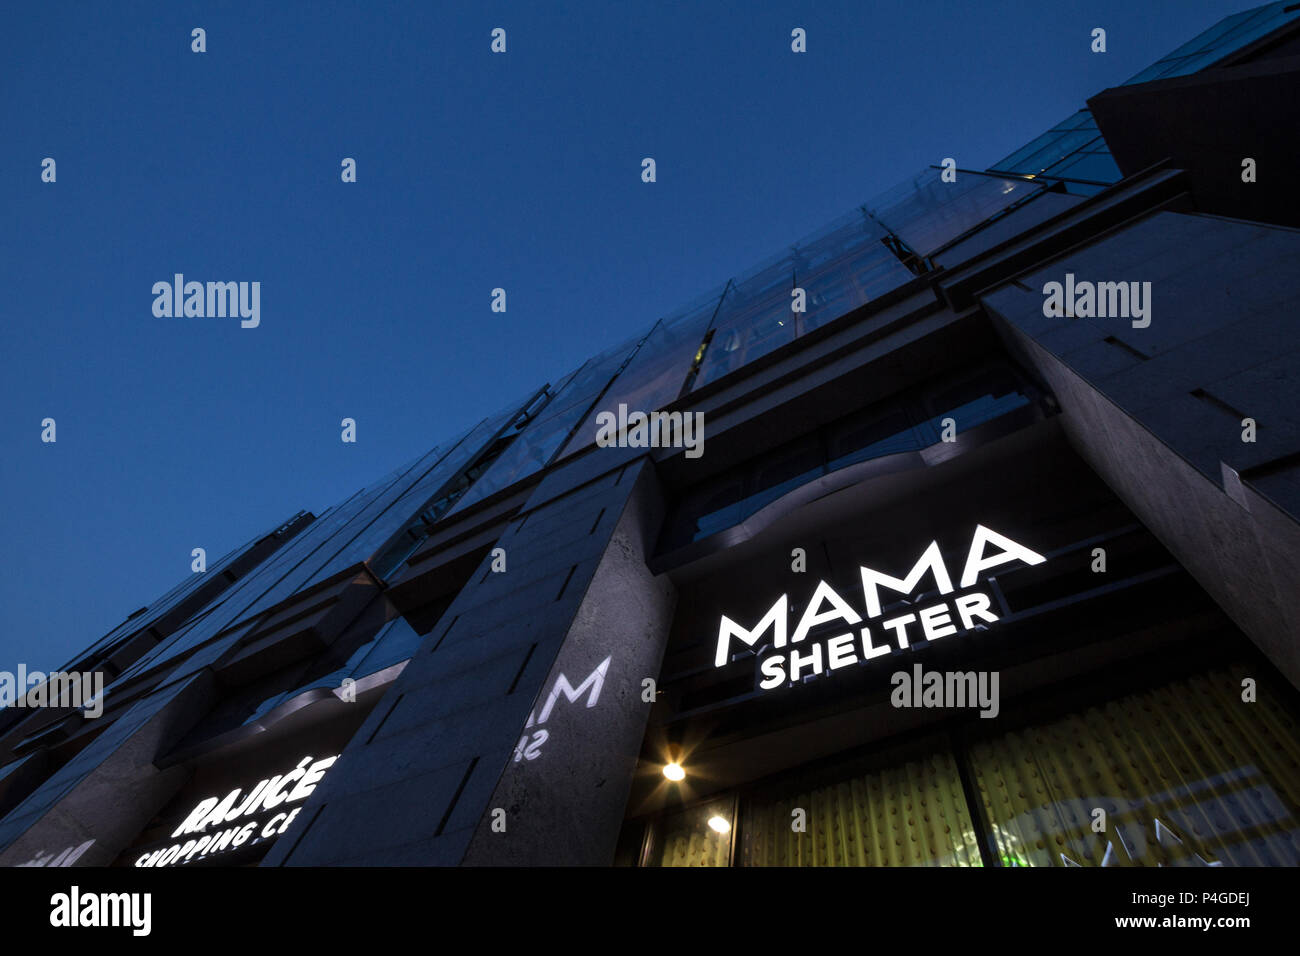 BELGRADE, SERBIA - JUNE 16, 2018: Logo of Mama Shelter on their newly opened hotel in Belgrade. Mama Shelter is a luxury hispter hotel brand from Fran - Stock Image